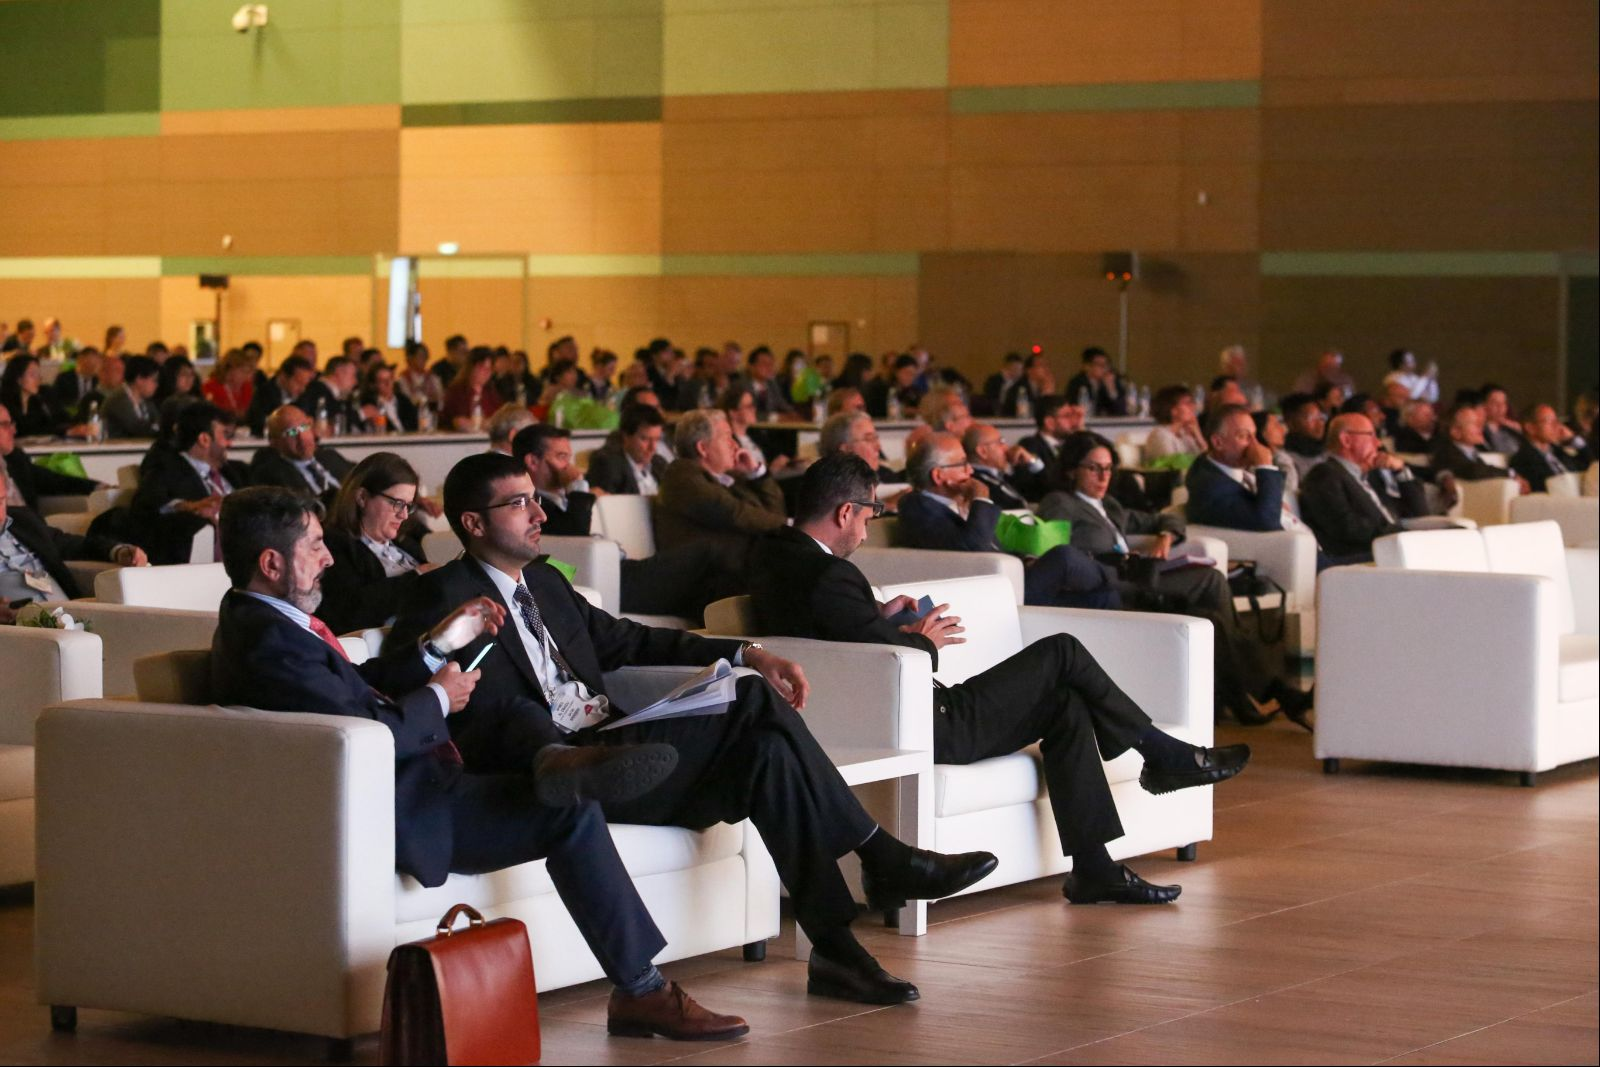 ufi-global-congress-2019-event-industry-trust-in-the-workplace